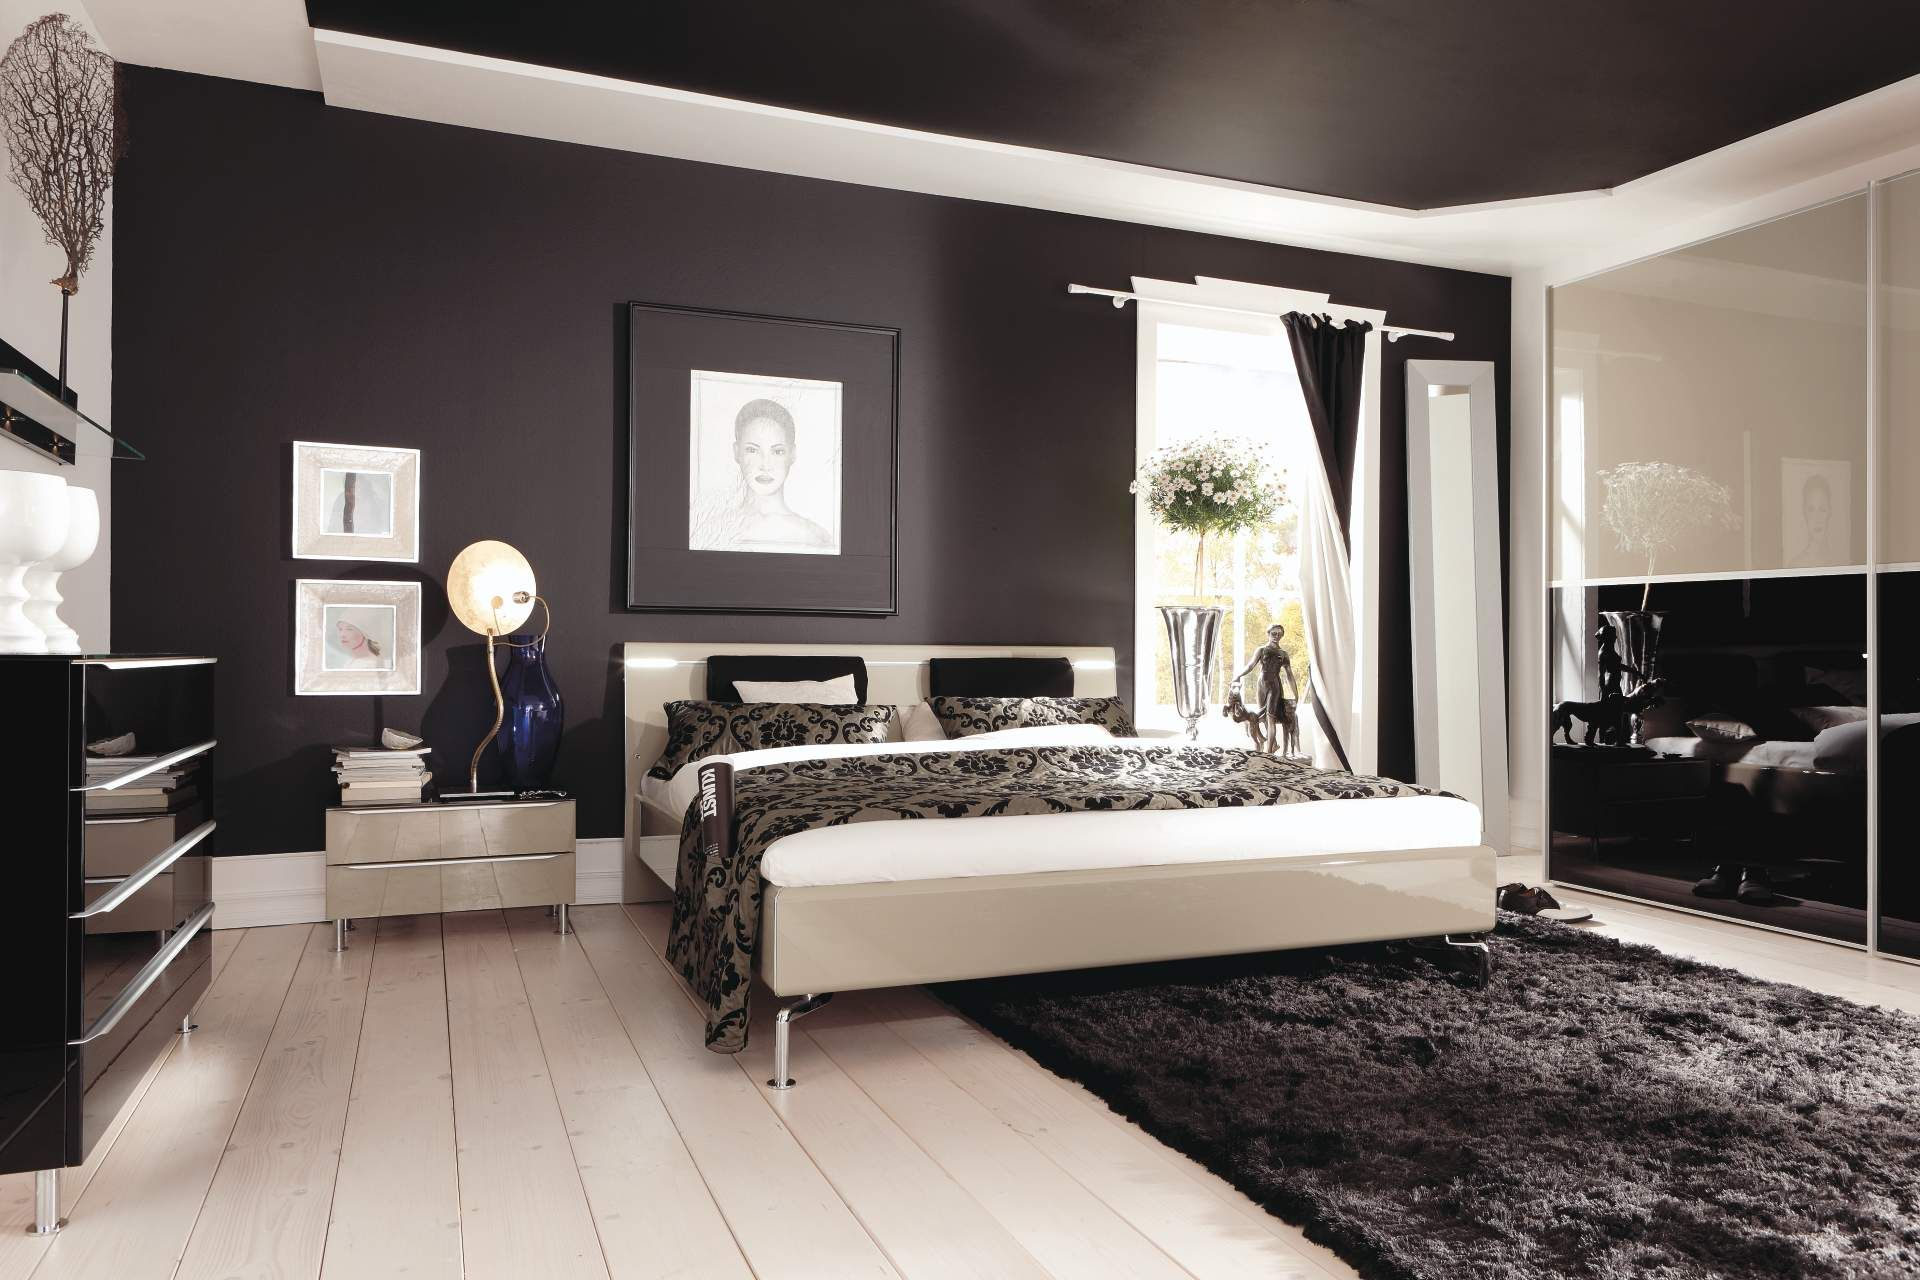 Bedroom Minimalist Black And White Italian Bedroom Furniture Design